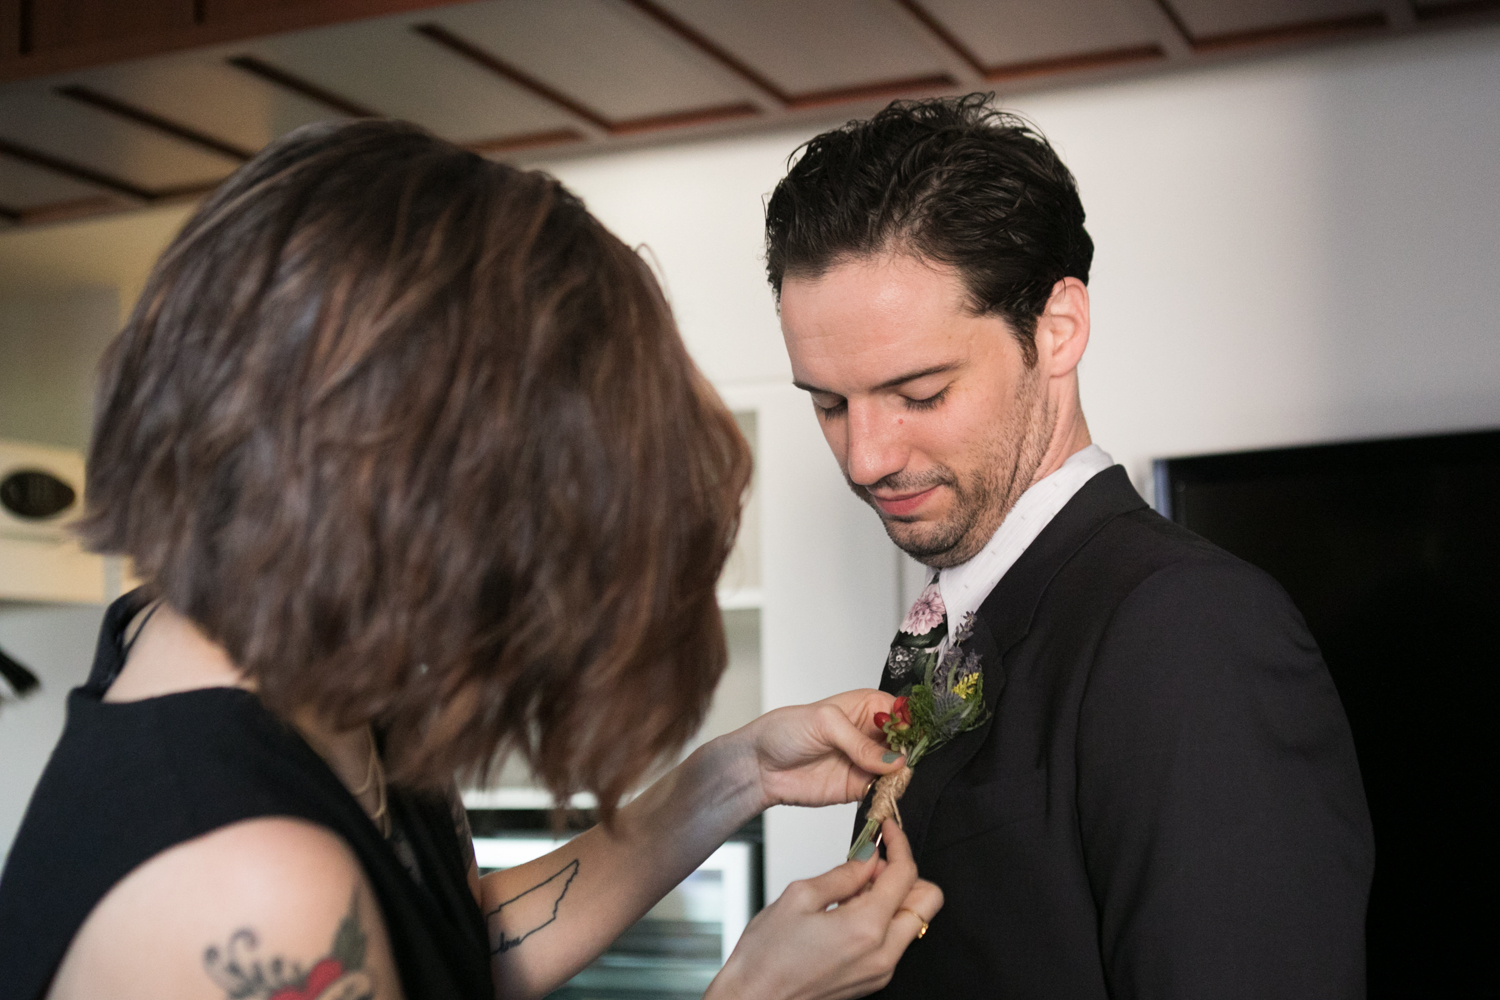 Pinning the boutineere on the groom.